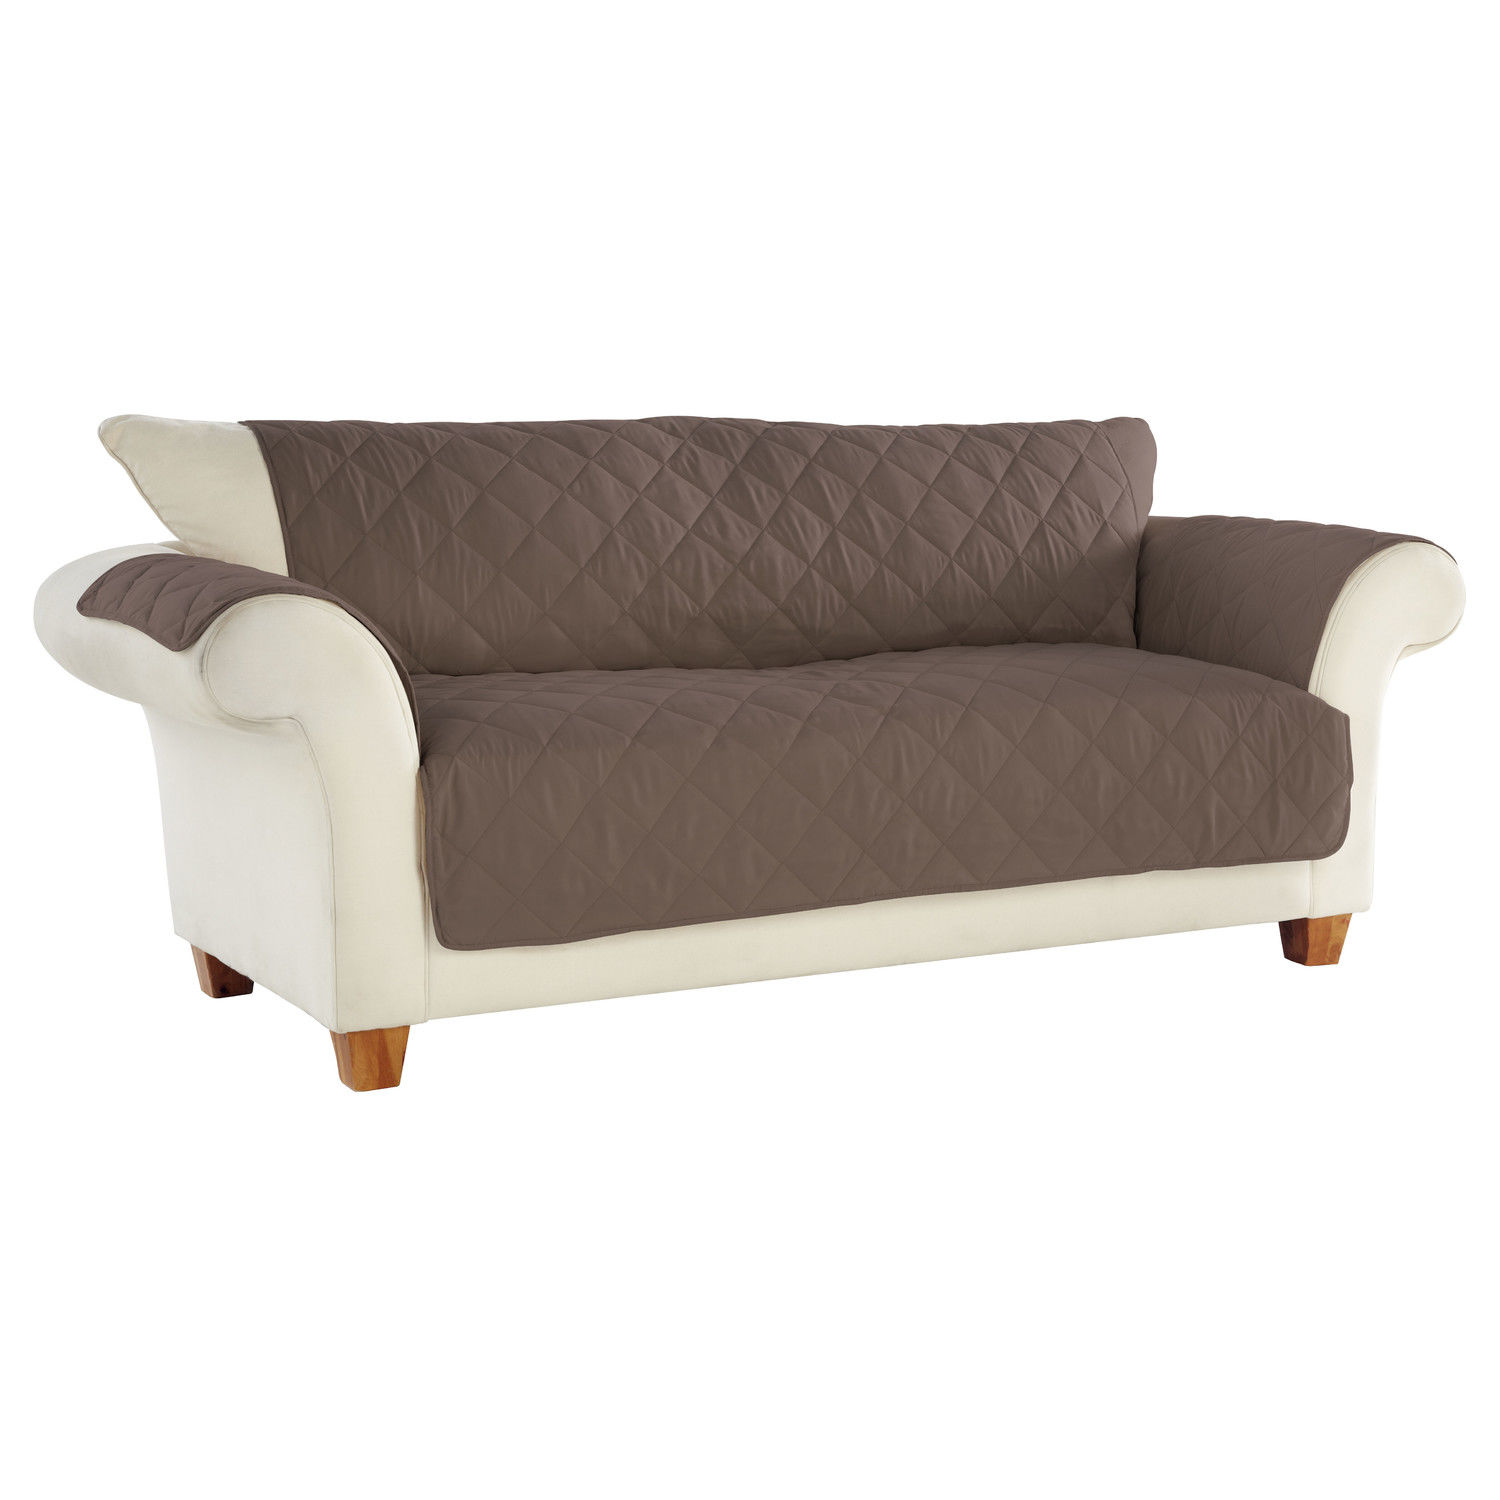 contemporary sofa slipcovers walmart picture-Top sofa Slipcovers Walmart Wallpaper